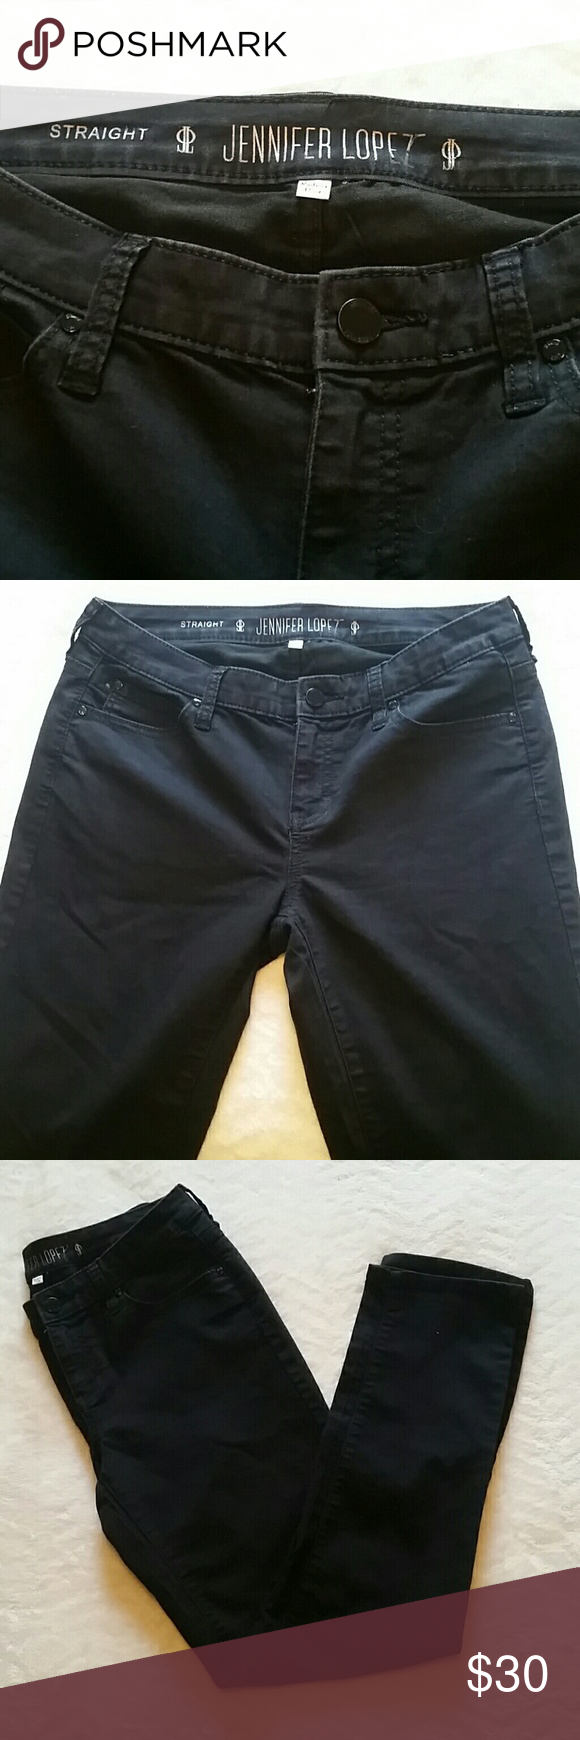 Jennifer lopez straight jeans size the inseam is approx sizing chart says  equivalent also my posh picks rh pinterest